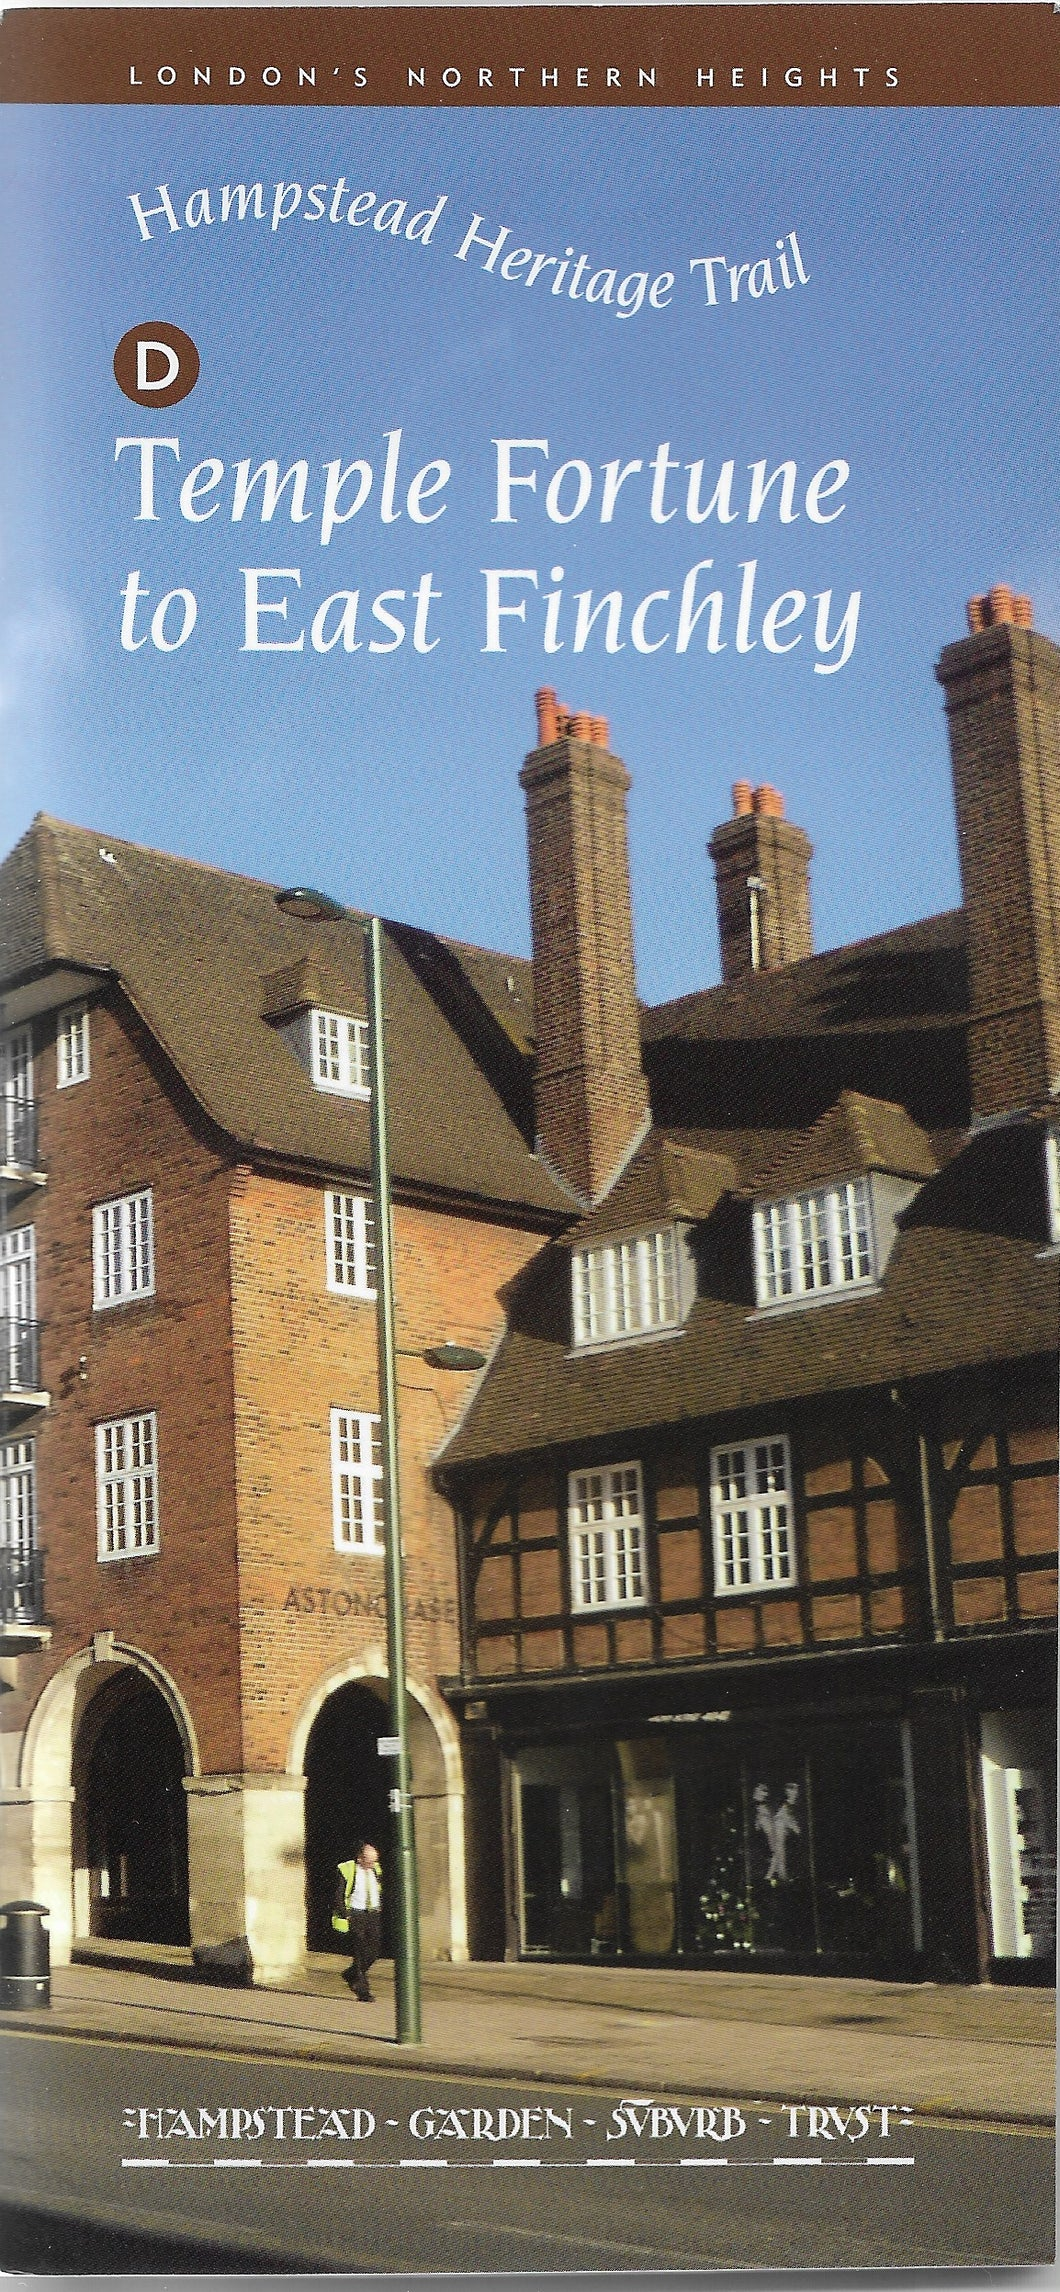 Guide - (D) Temple Fortune to East Finchley